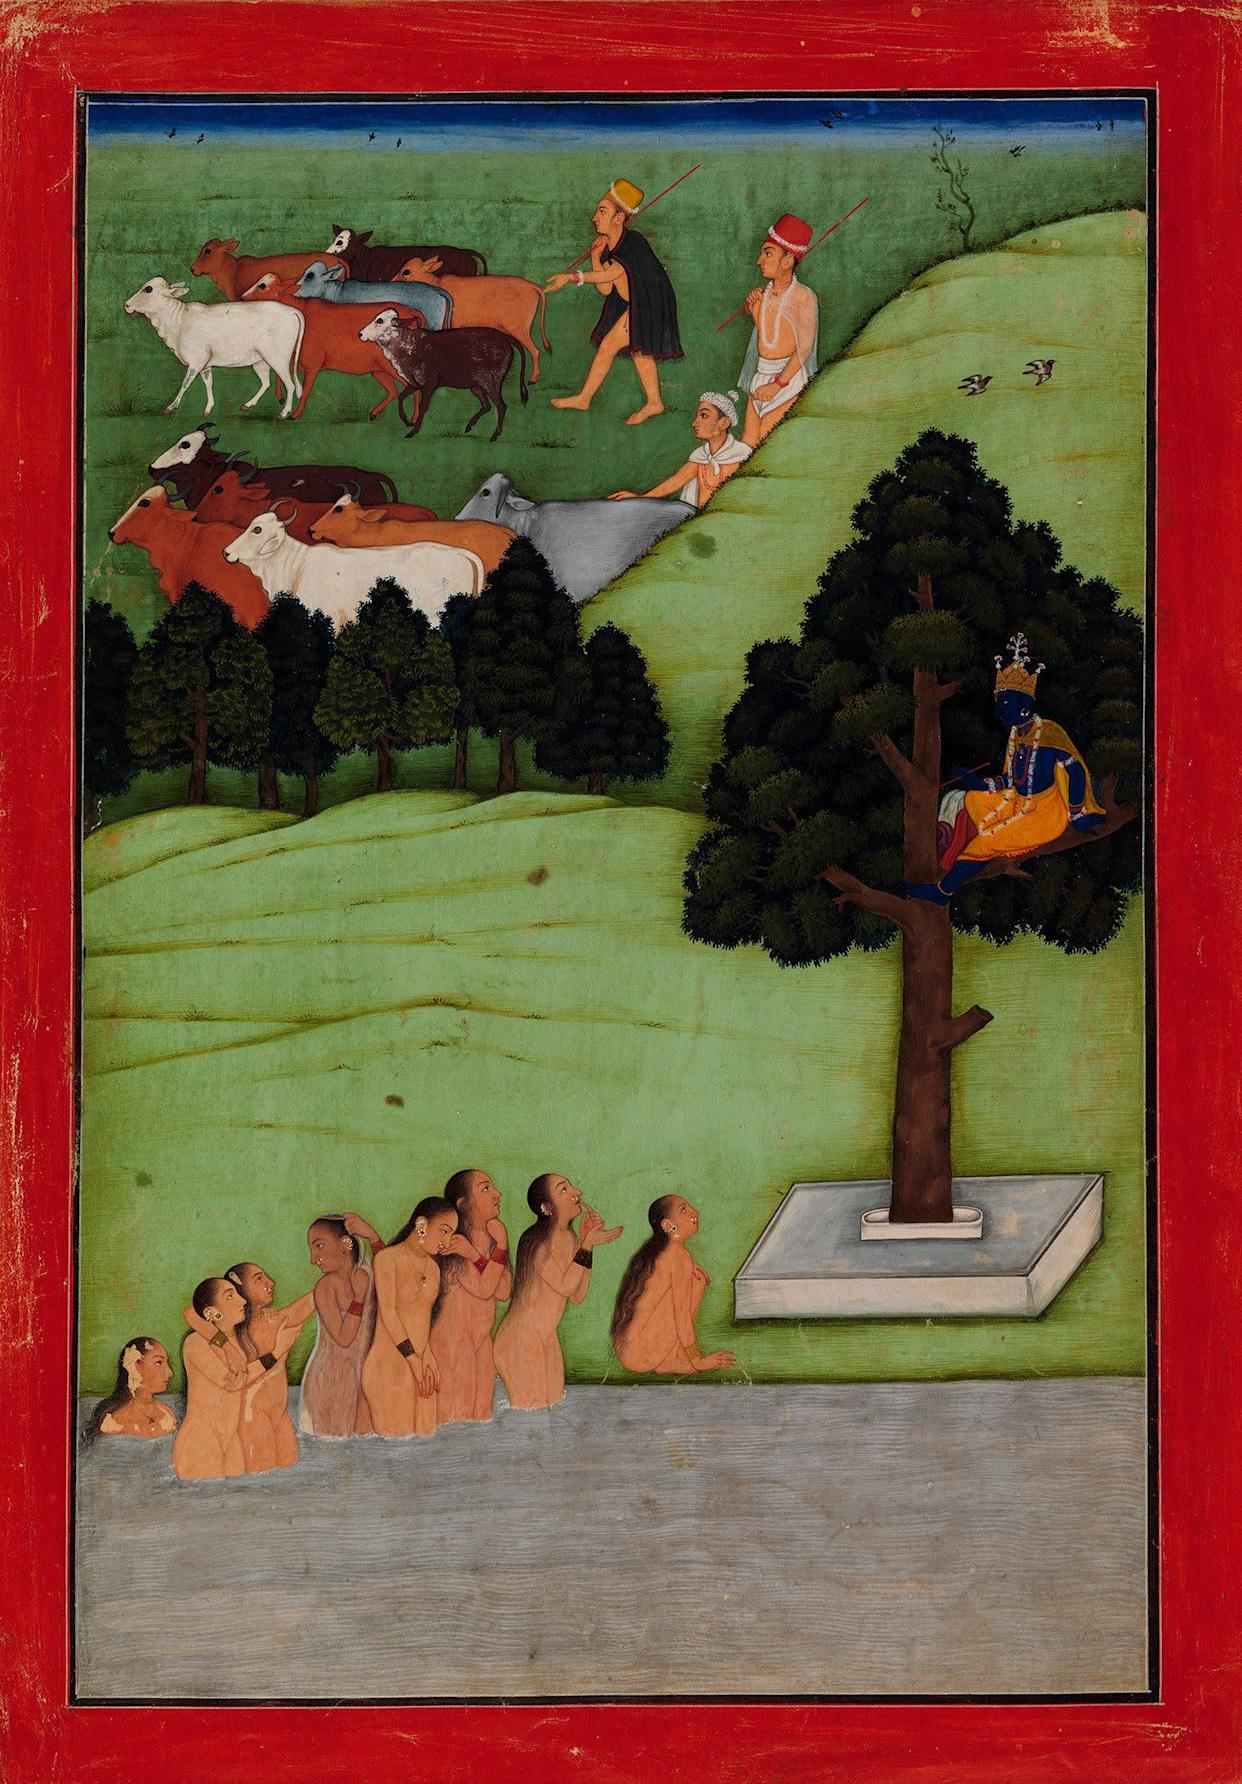 """""""Krishna Steals the Clothing of the Gopis (CowMaidens).""""Attributed to the artist known as the Early Master atthe Court of Mandi.Probably an illustrated folio from a dispersedBhagavata Purana (The Ancient Story of God)Punjab Hills, kingdom of Mandi, ca. 1640.Opaque watercolor and gold on paper; red border withwhite and black inner rules; painting 11 7/8 x 8 in.Promised Gift of the Kronos Collections, 2015."""